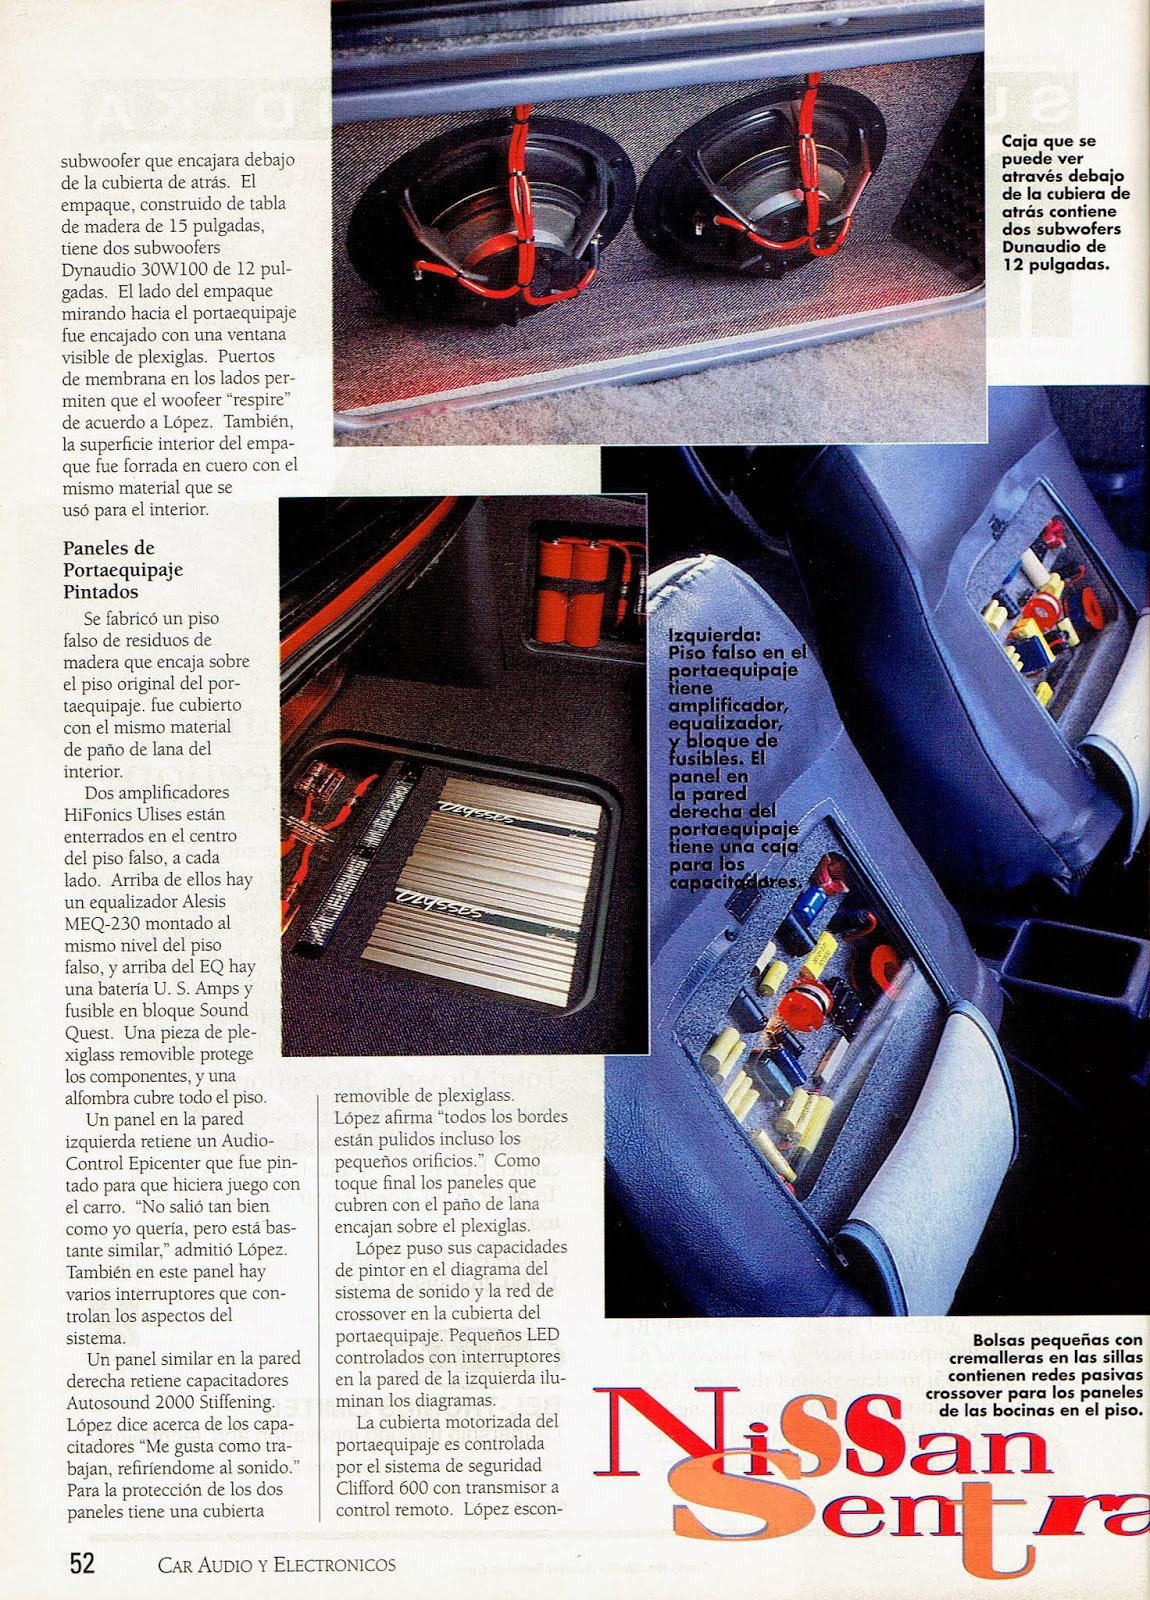 Image of Bajale al Boom Article - page 52 - Car Audio & Electronics Magazine Special Edition in Spanish